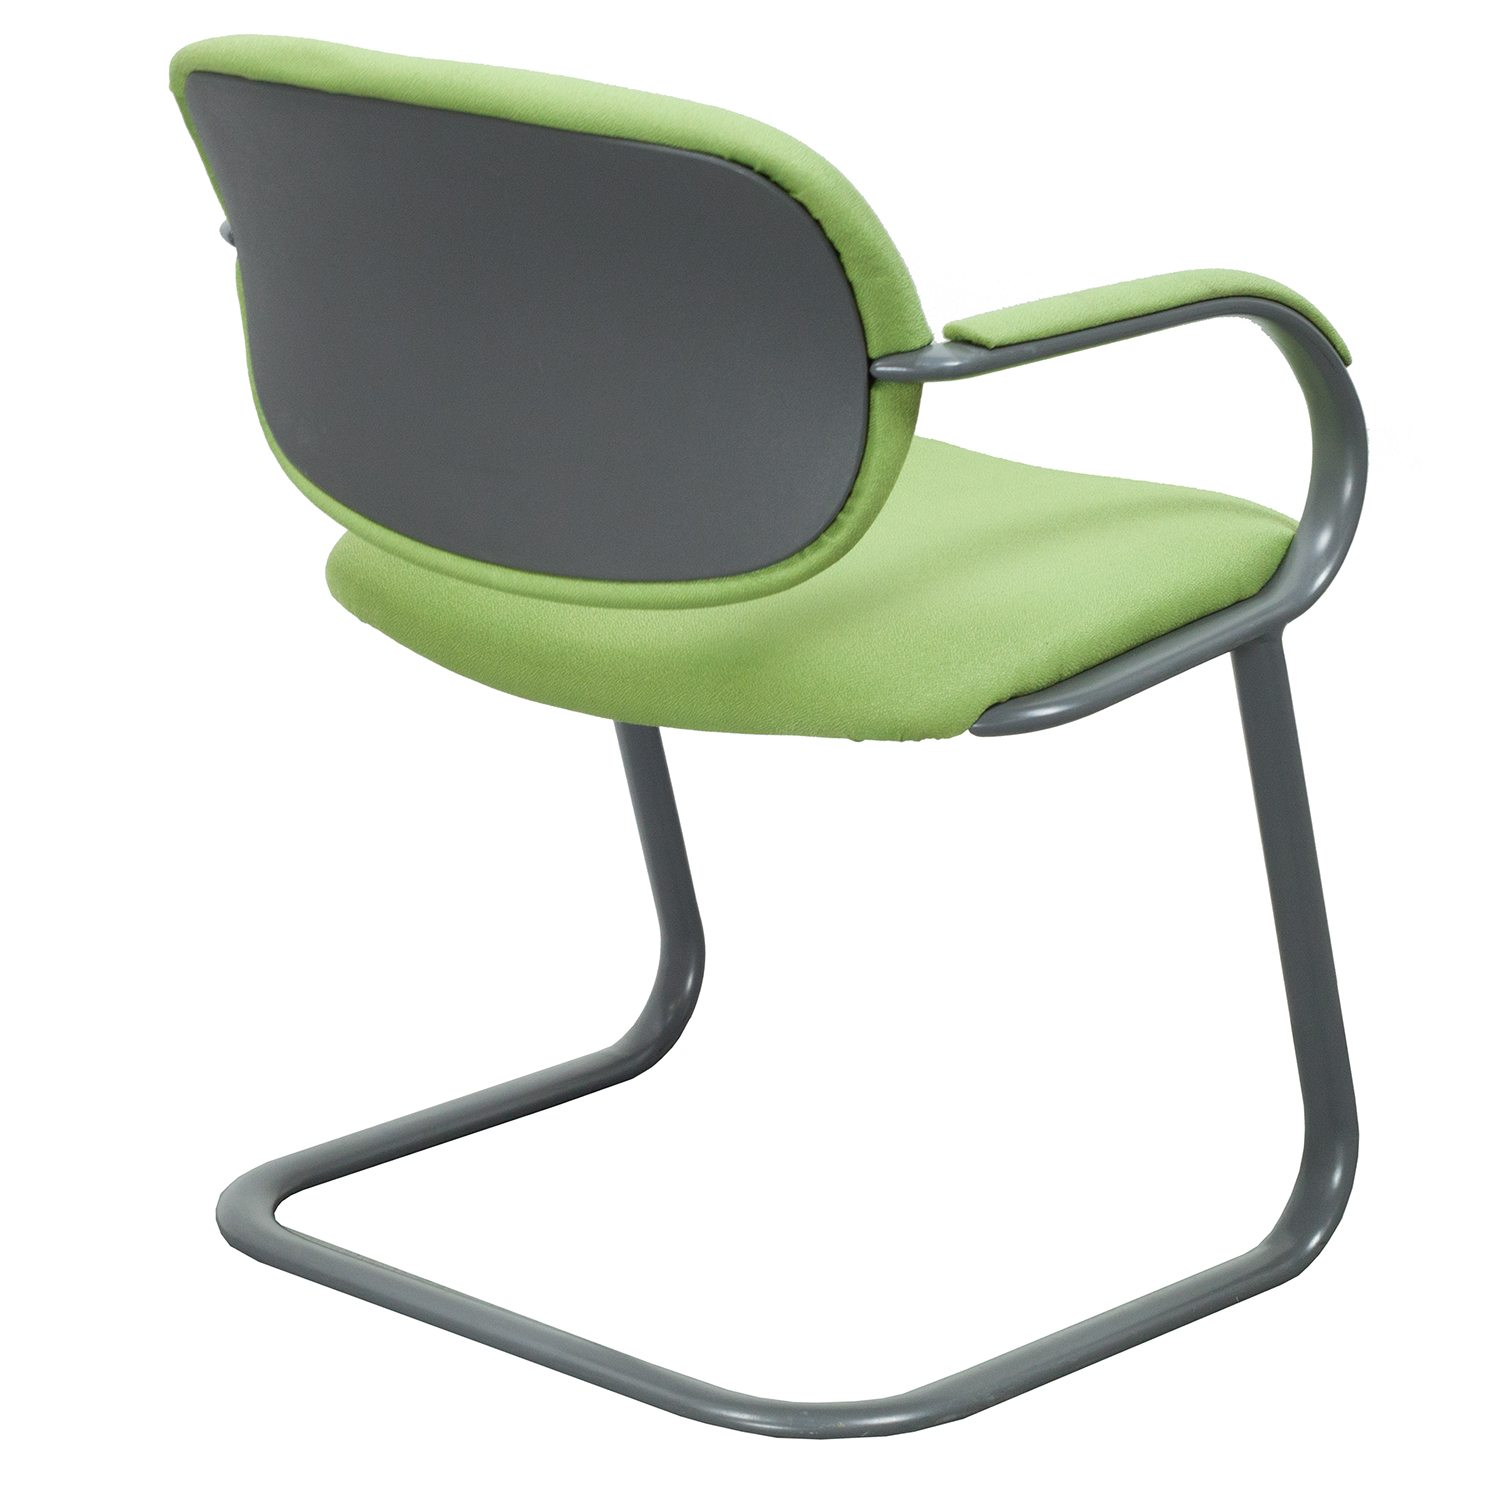 Lime Green Chair Haworth Reupholstered Used Side Chair Lime Green